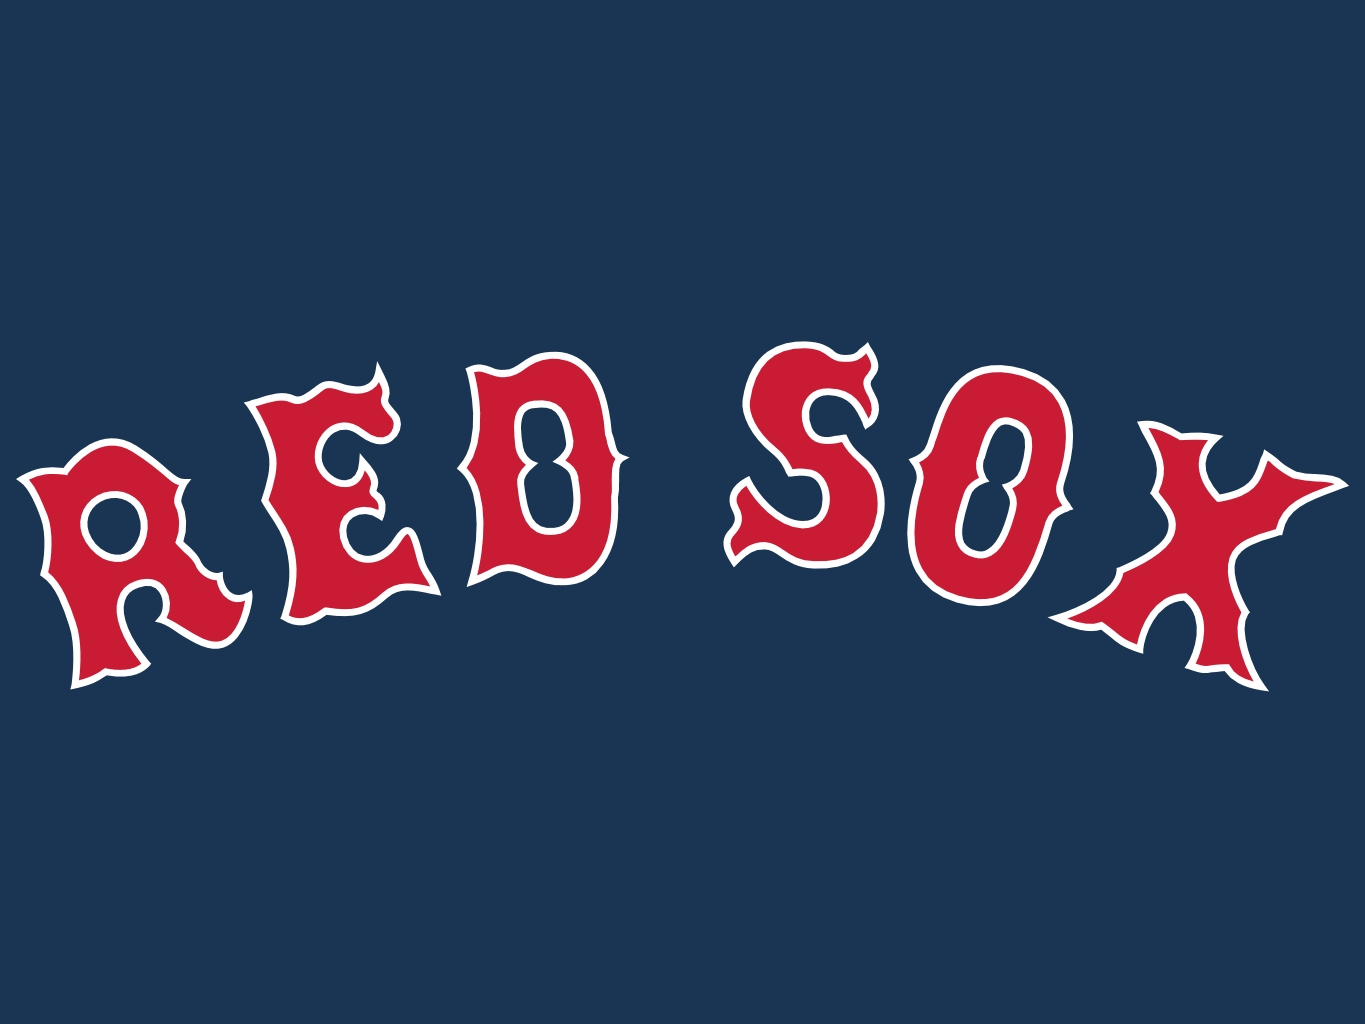 biston red sox